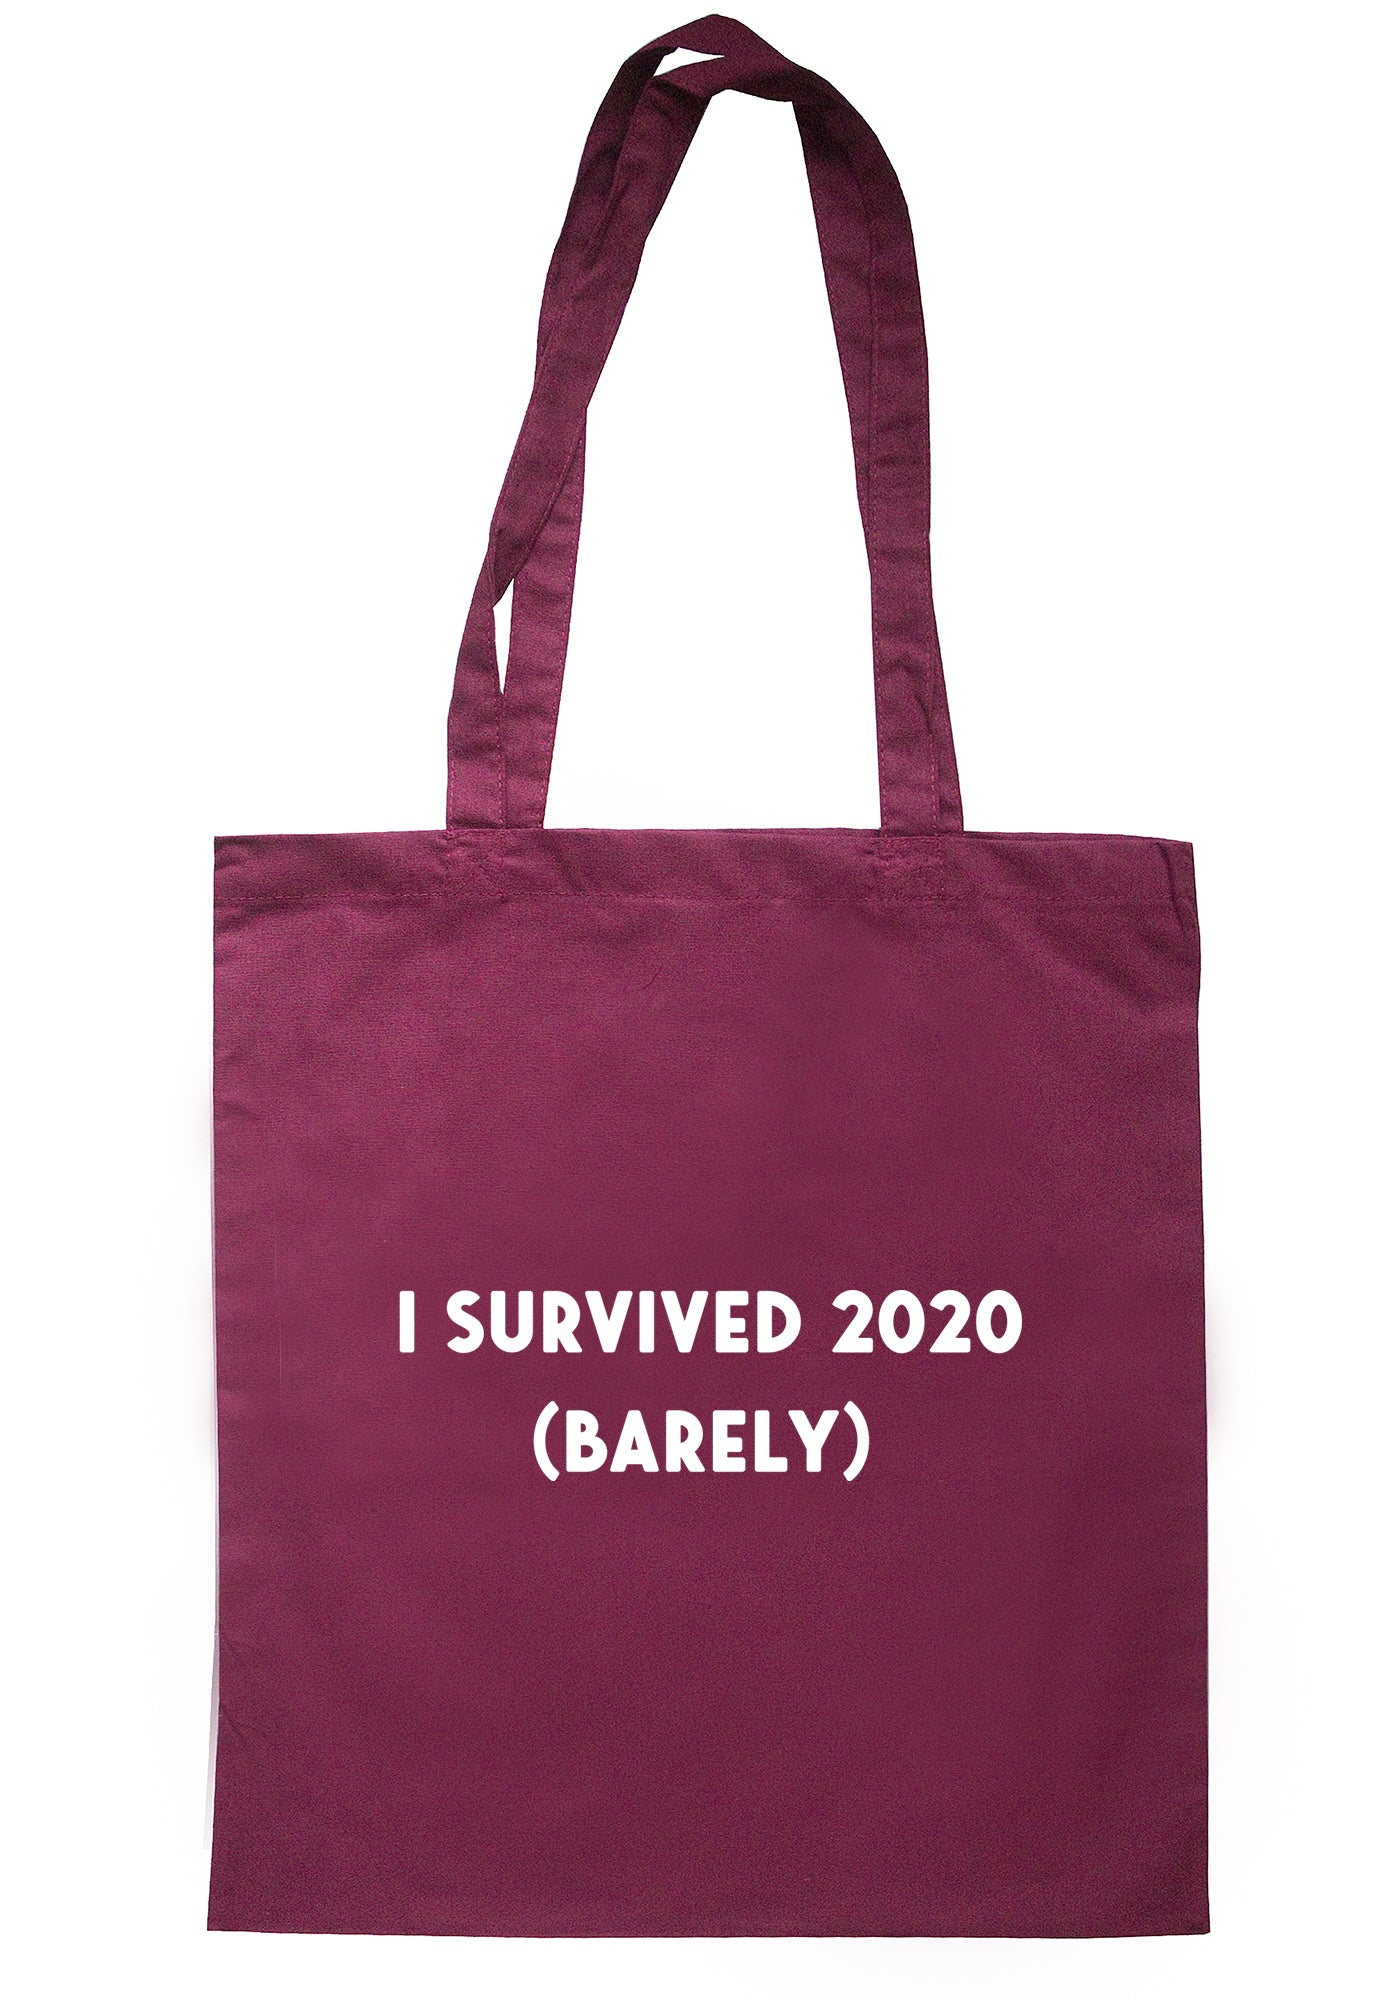 I Survived 2020 (Barely) Tote Bag S1139 - Illustrated Identity Ltd.